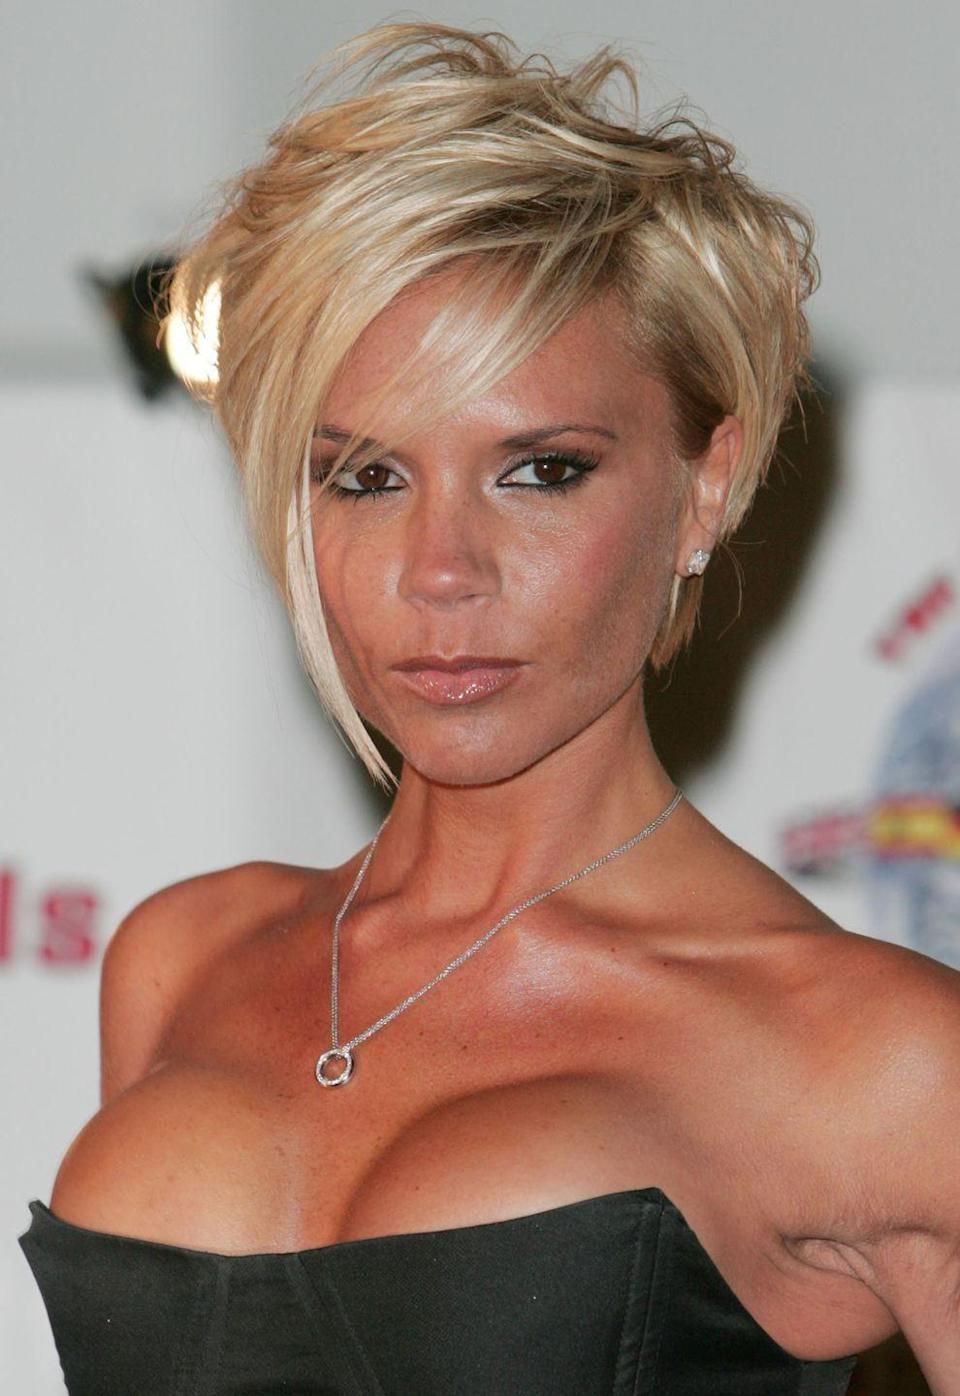 <p>Singer and designer <strong>Victoria Beckham</strong> is one of the original icons of the asymmetrical bob, sparking trends with her cropped and choppy layered look. </p>